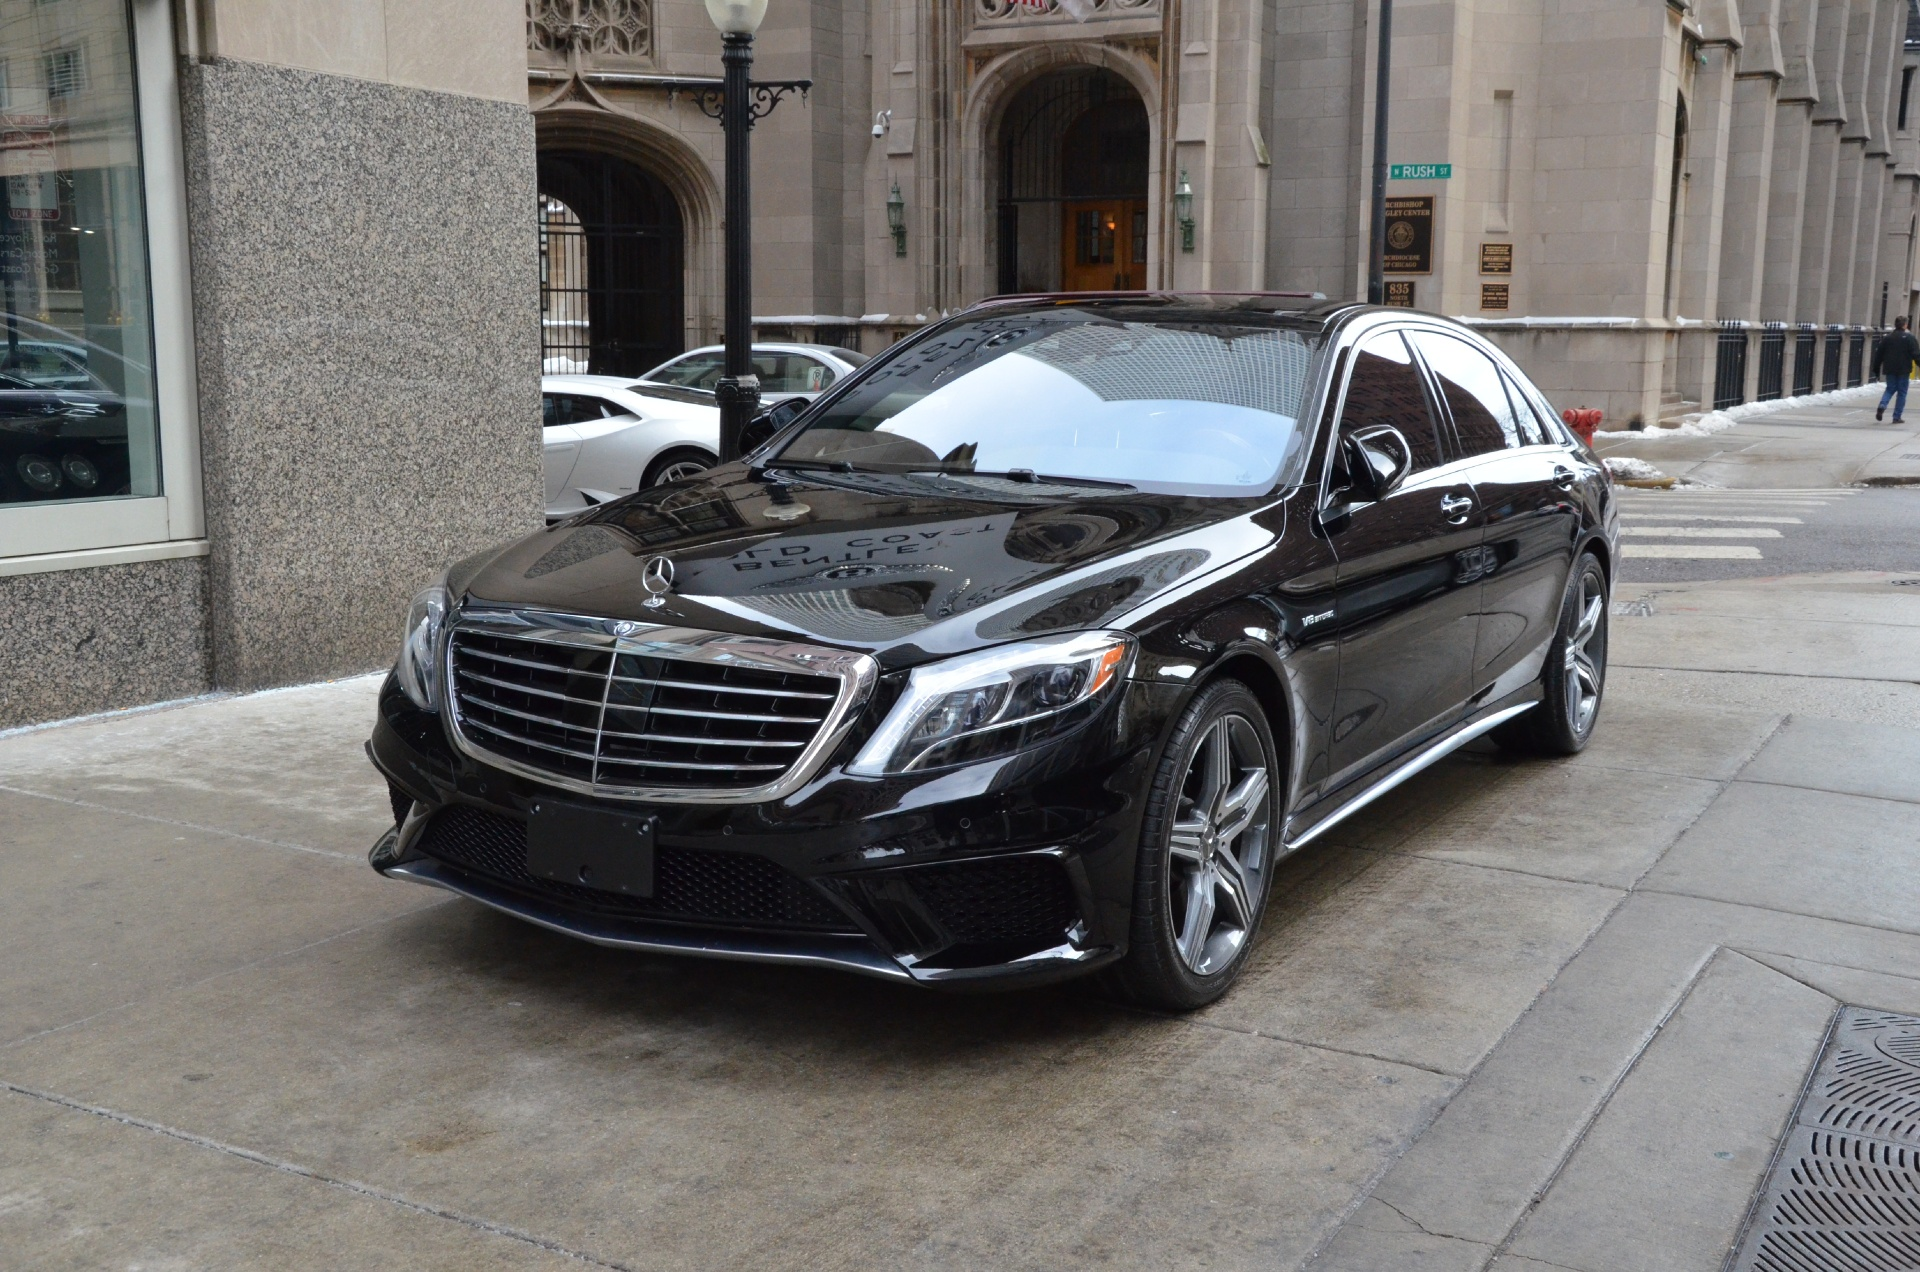 2015 mercedes benz s class s63 amg stock 01287 for sale near chicago il il mercedes benz dealer. Black Bedroom Furniture Sets. Home Design Ideas